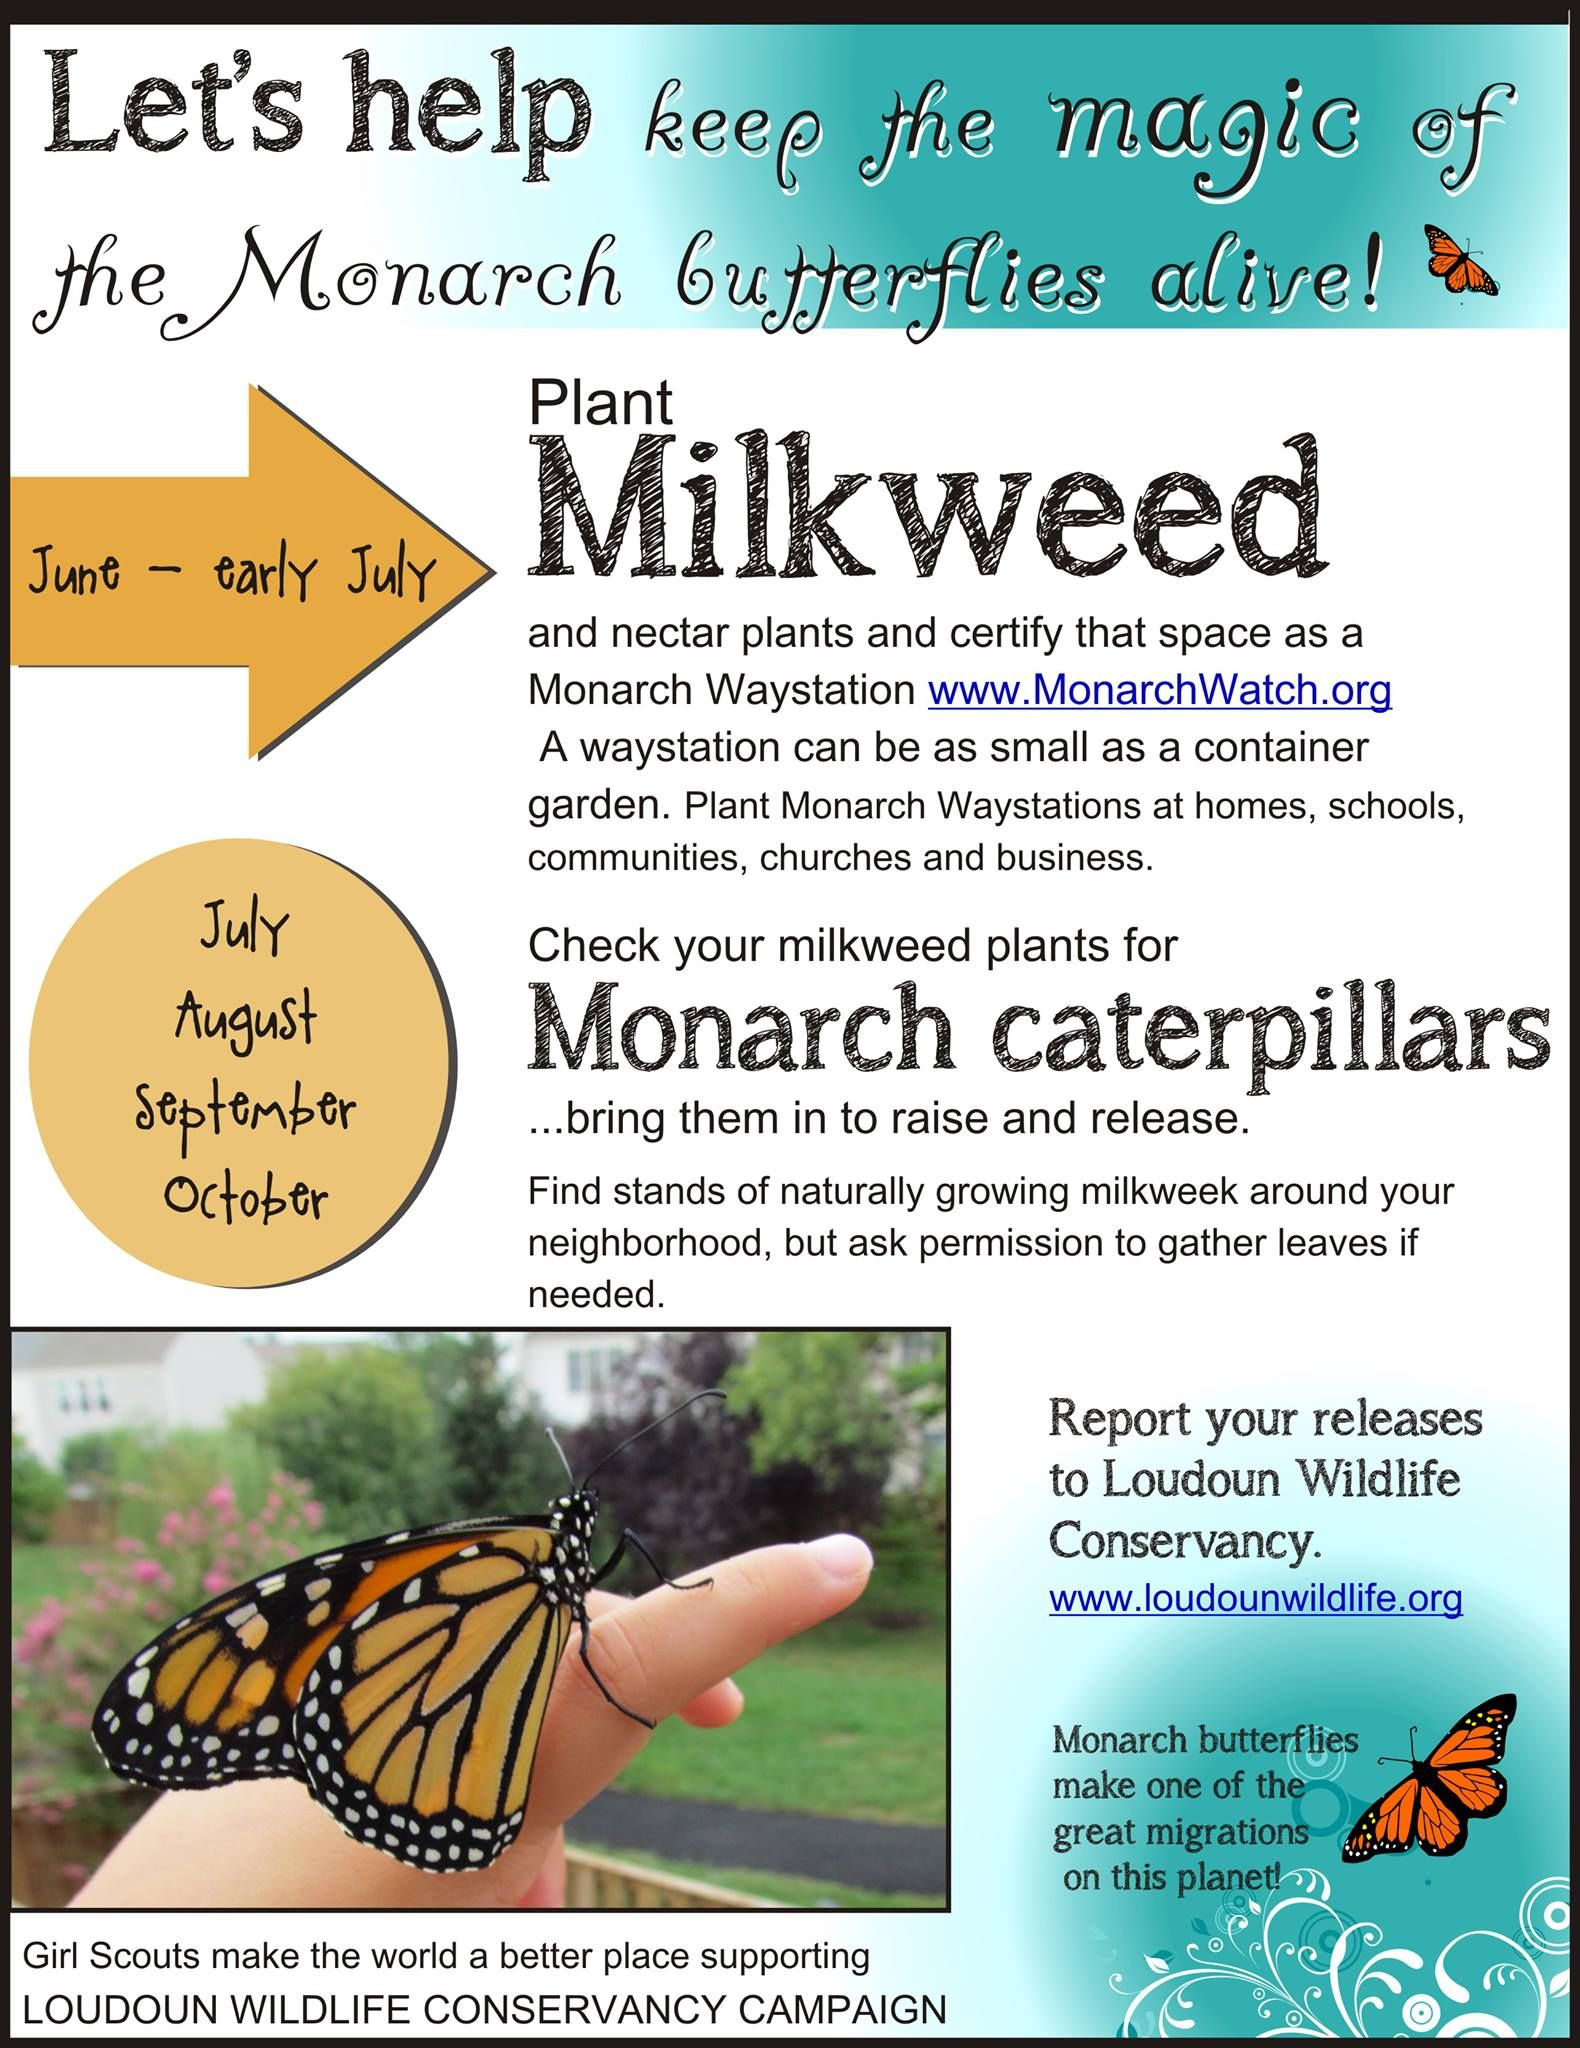 Monarch Butterflies, Almost Time To Find Some Caterpillars